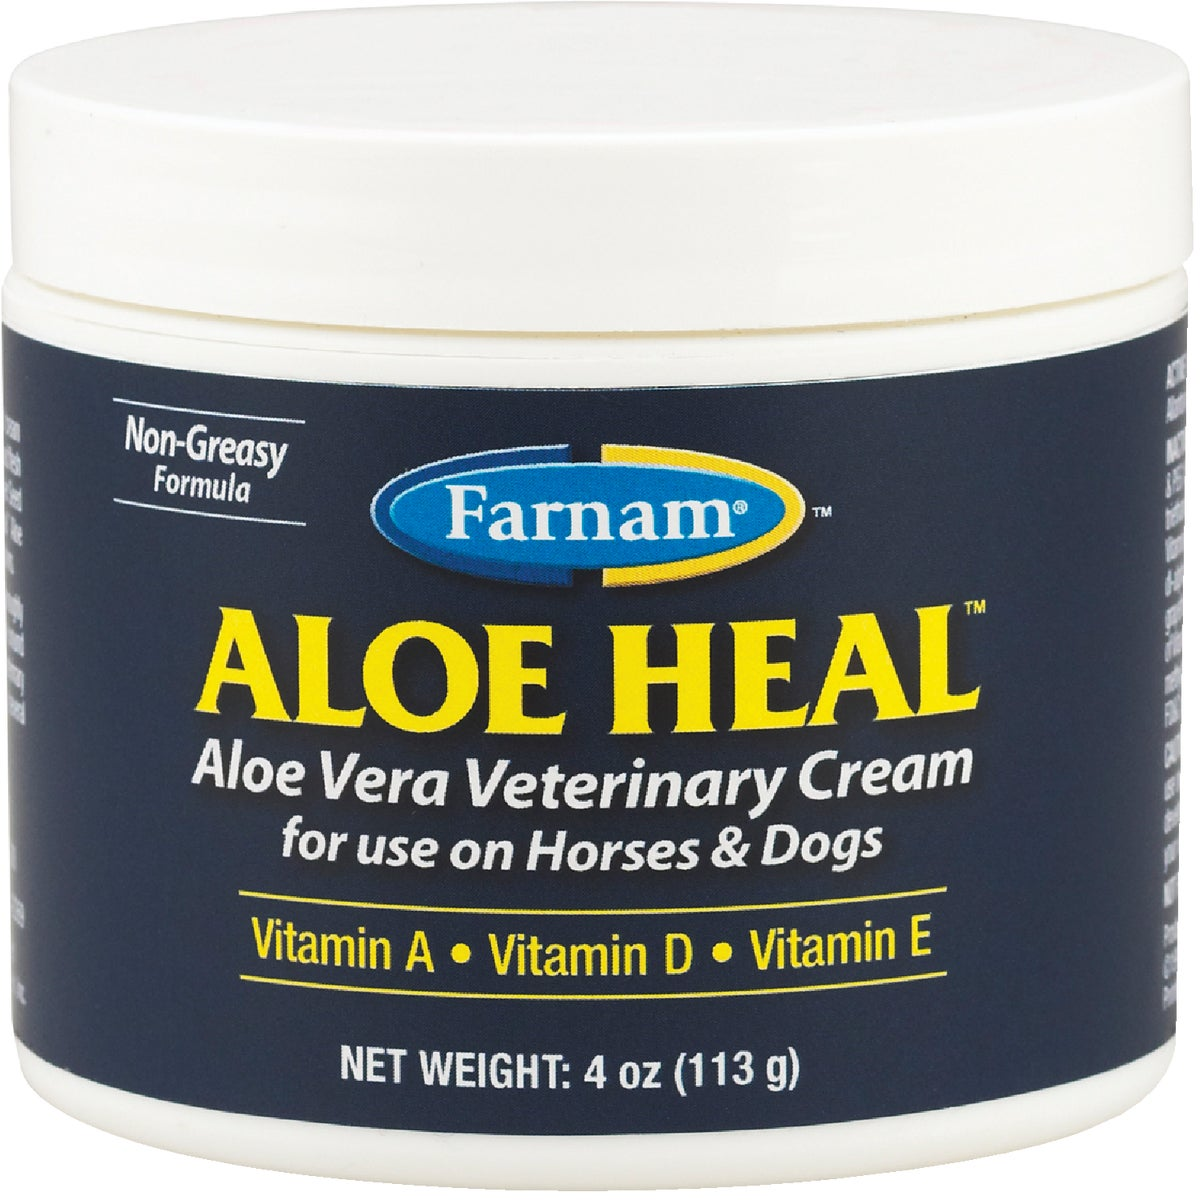 4OZ ALOE HEAL CREAM - 45404 by Farnam Central Life